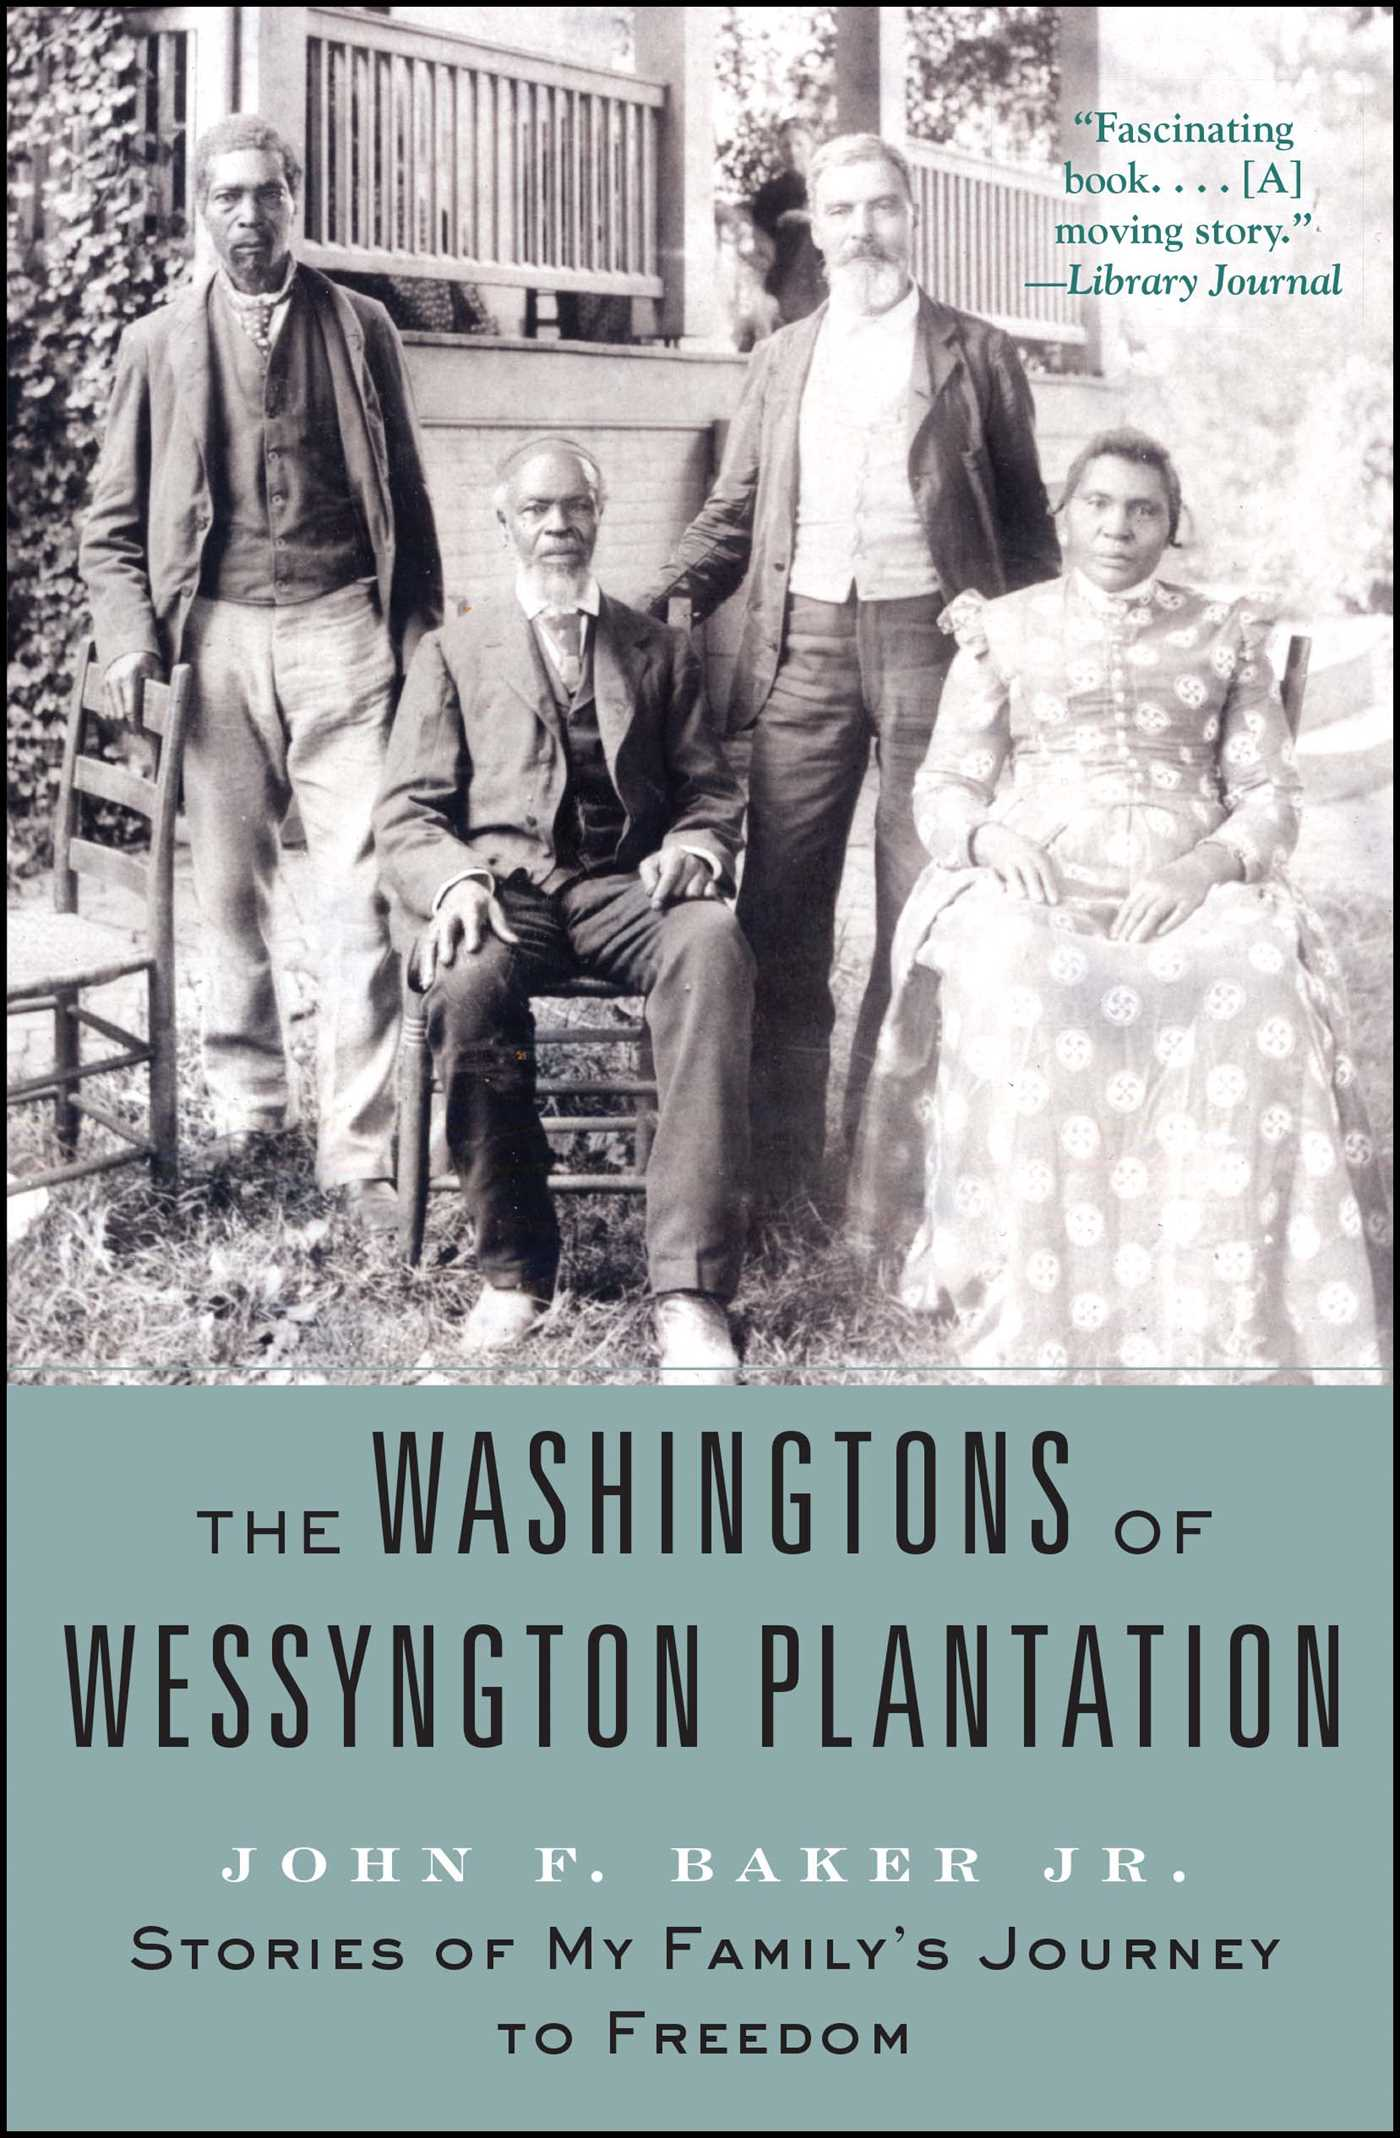 The washingtons of wessyngton plantation 9781416567417 hr